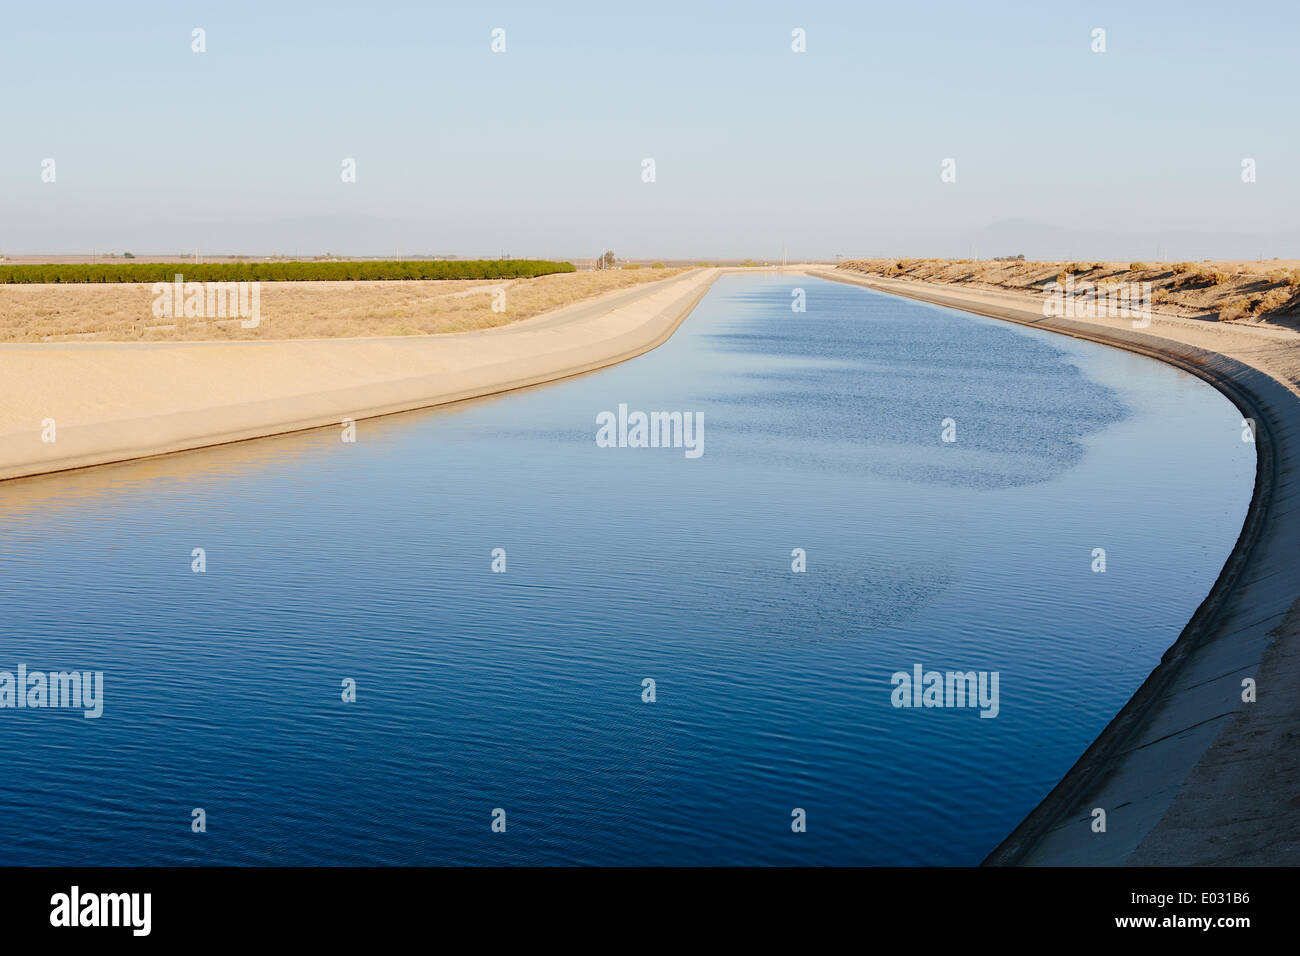 Irrigation canal serving drought-ridden agricultural areas of Central Valley California. - Stock Image